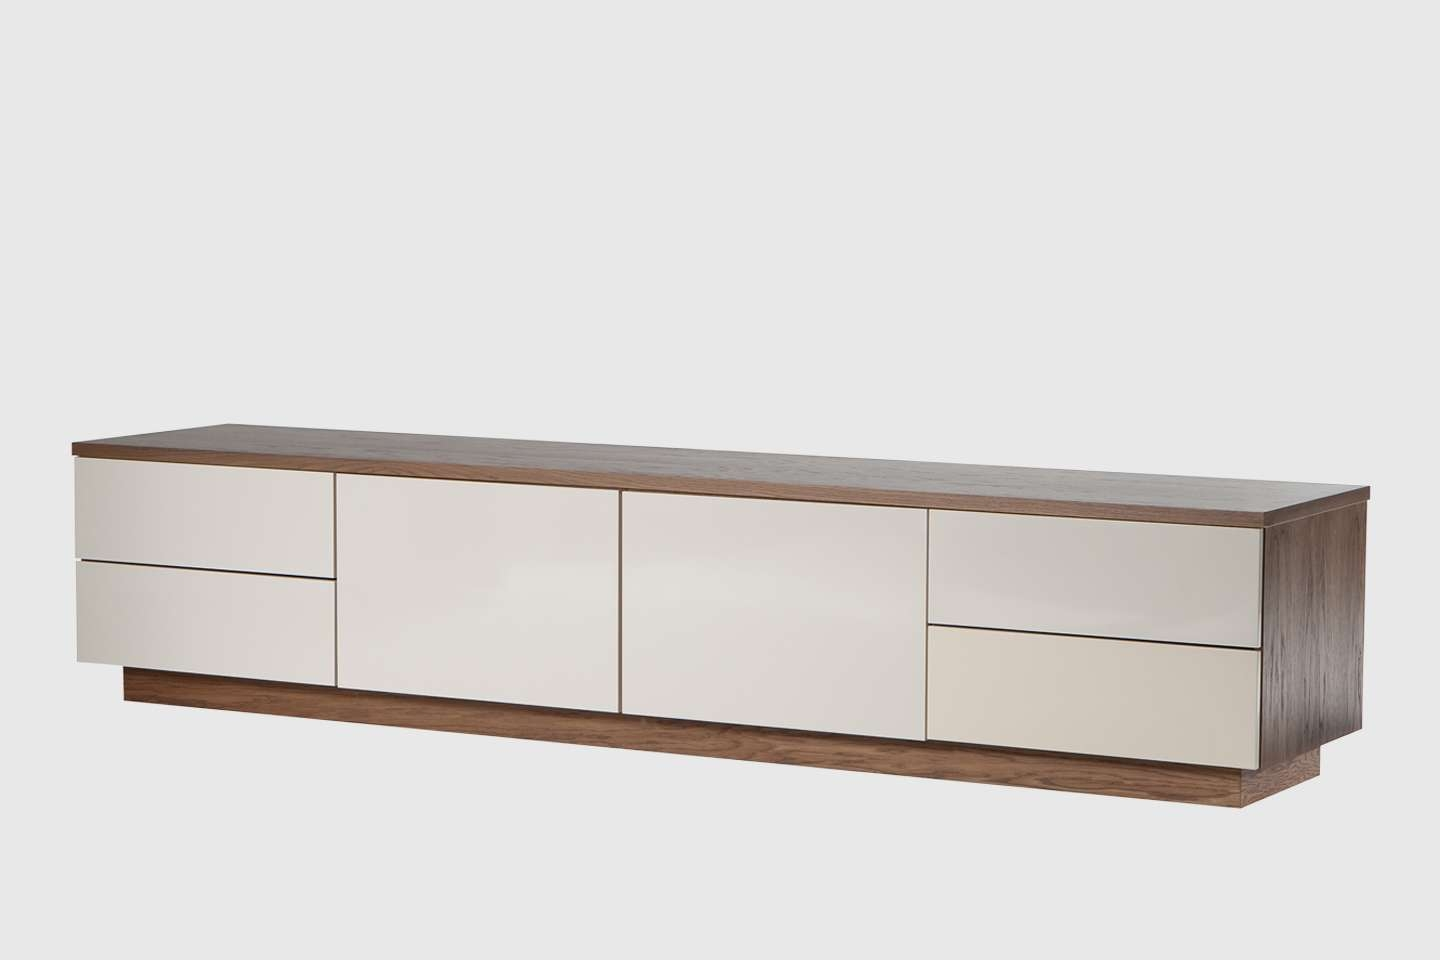 Sideboards Archives – Michael Northcroft Intended For Small Low Sideboards (View 12 of 20)